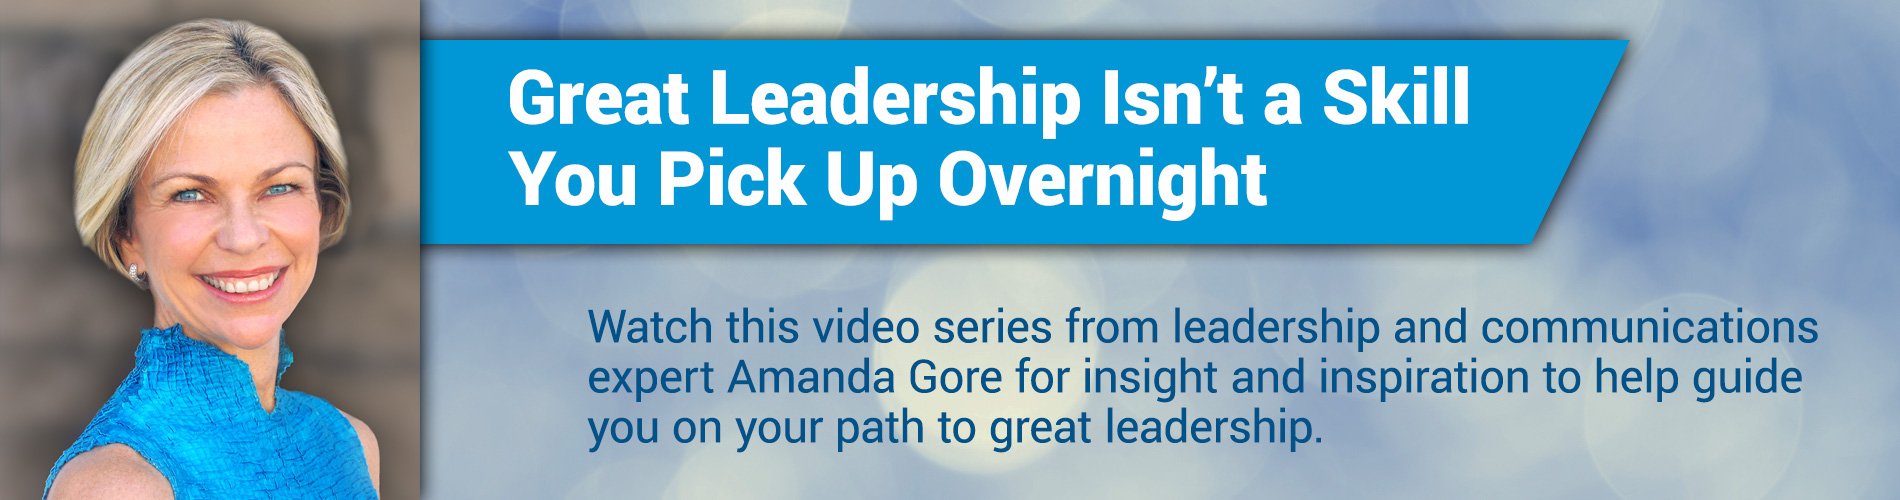 Amanda-Gore-Leadership-Series-Express-Ocala-Florida-Staffing-Company